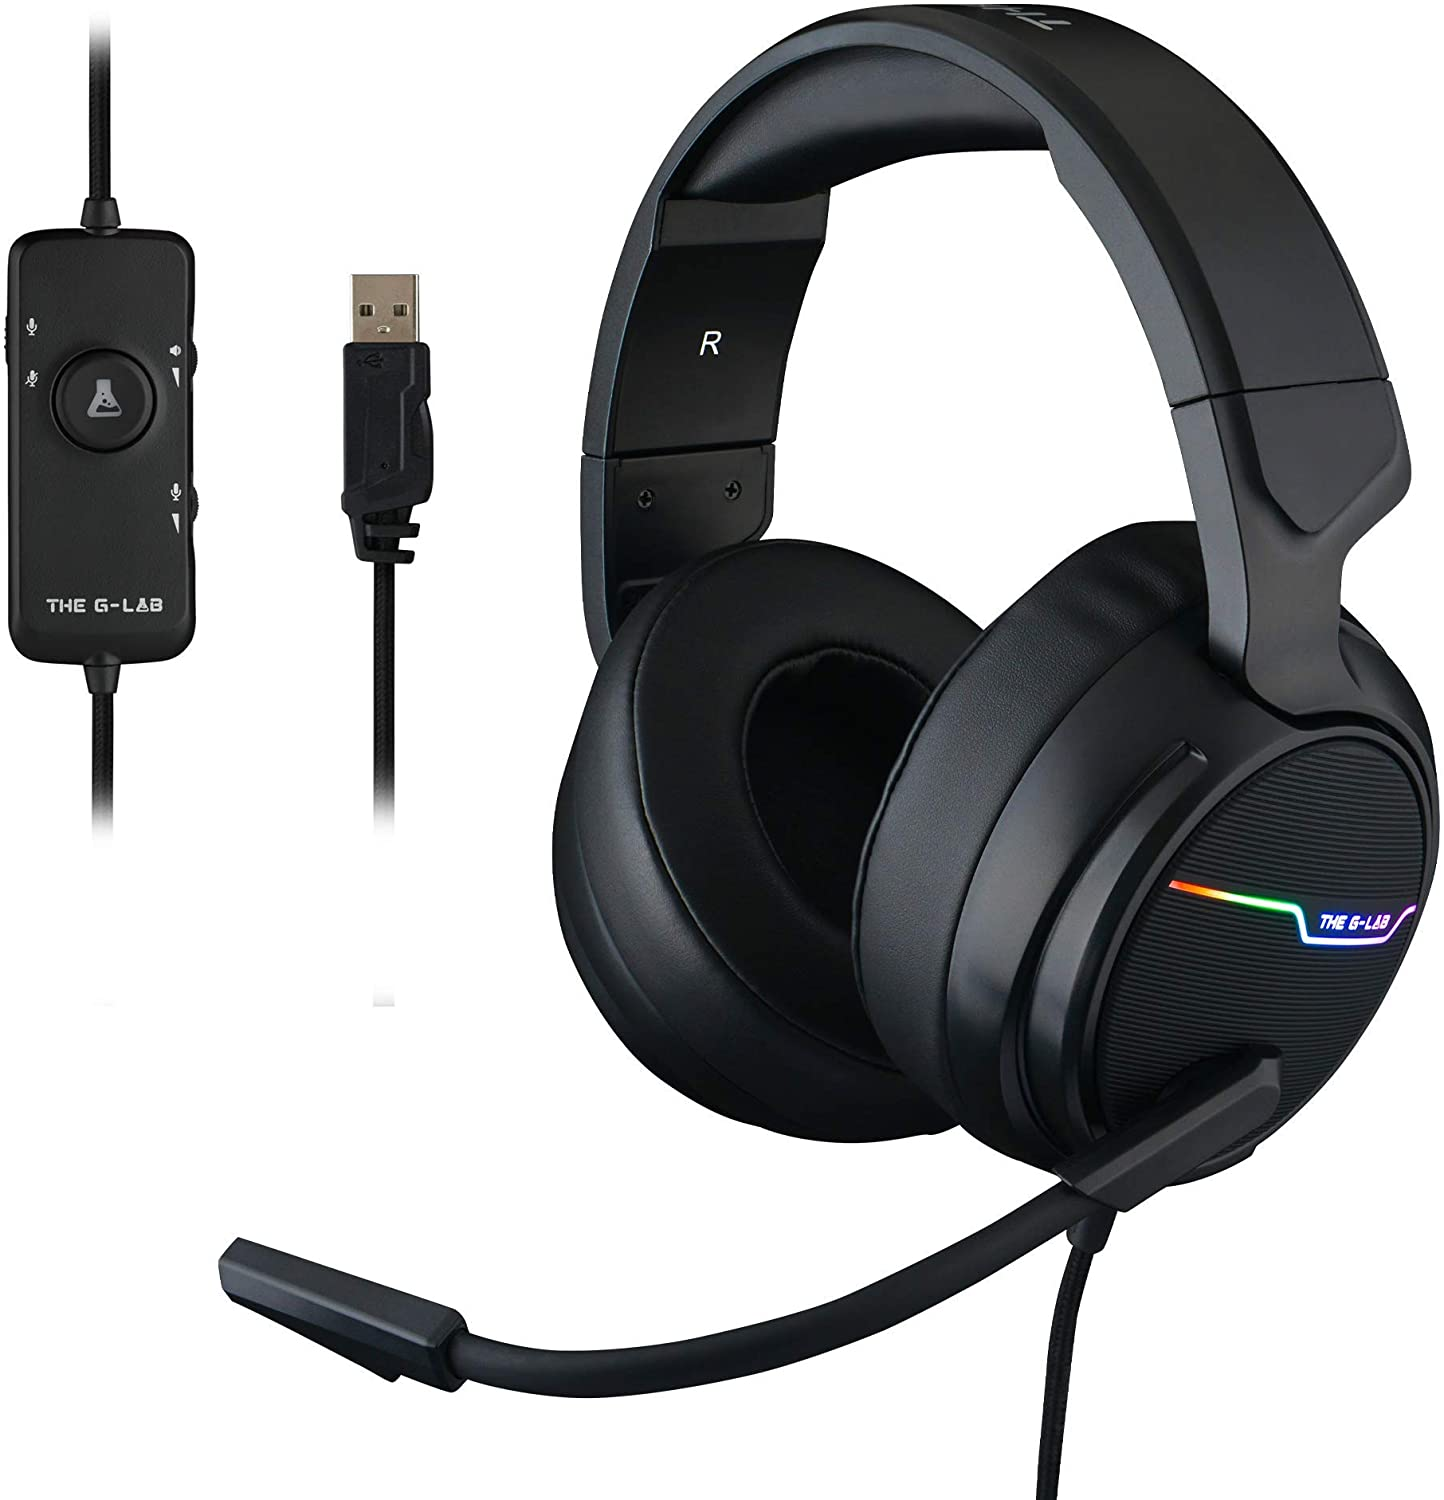 THE G-LAB Korp Thallium Cascos Gaming USB 7.1 Digital Surround - Auriculares Gaming Micrófono con cancelación de Ruido, LED RGB - Compatible con PC PS4 Mac (Negro)